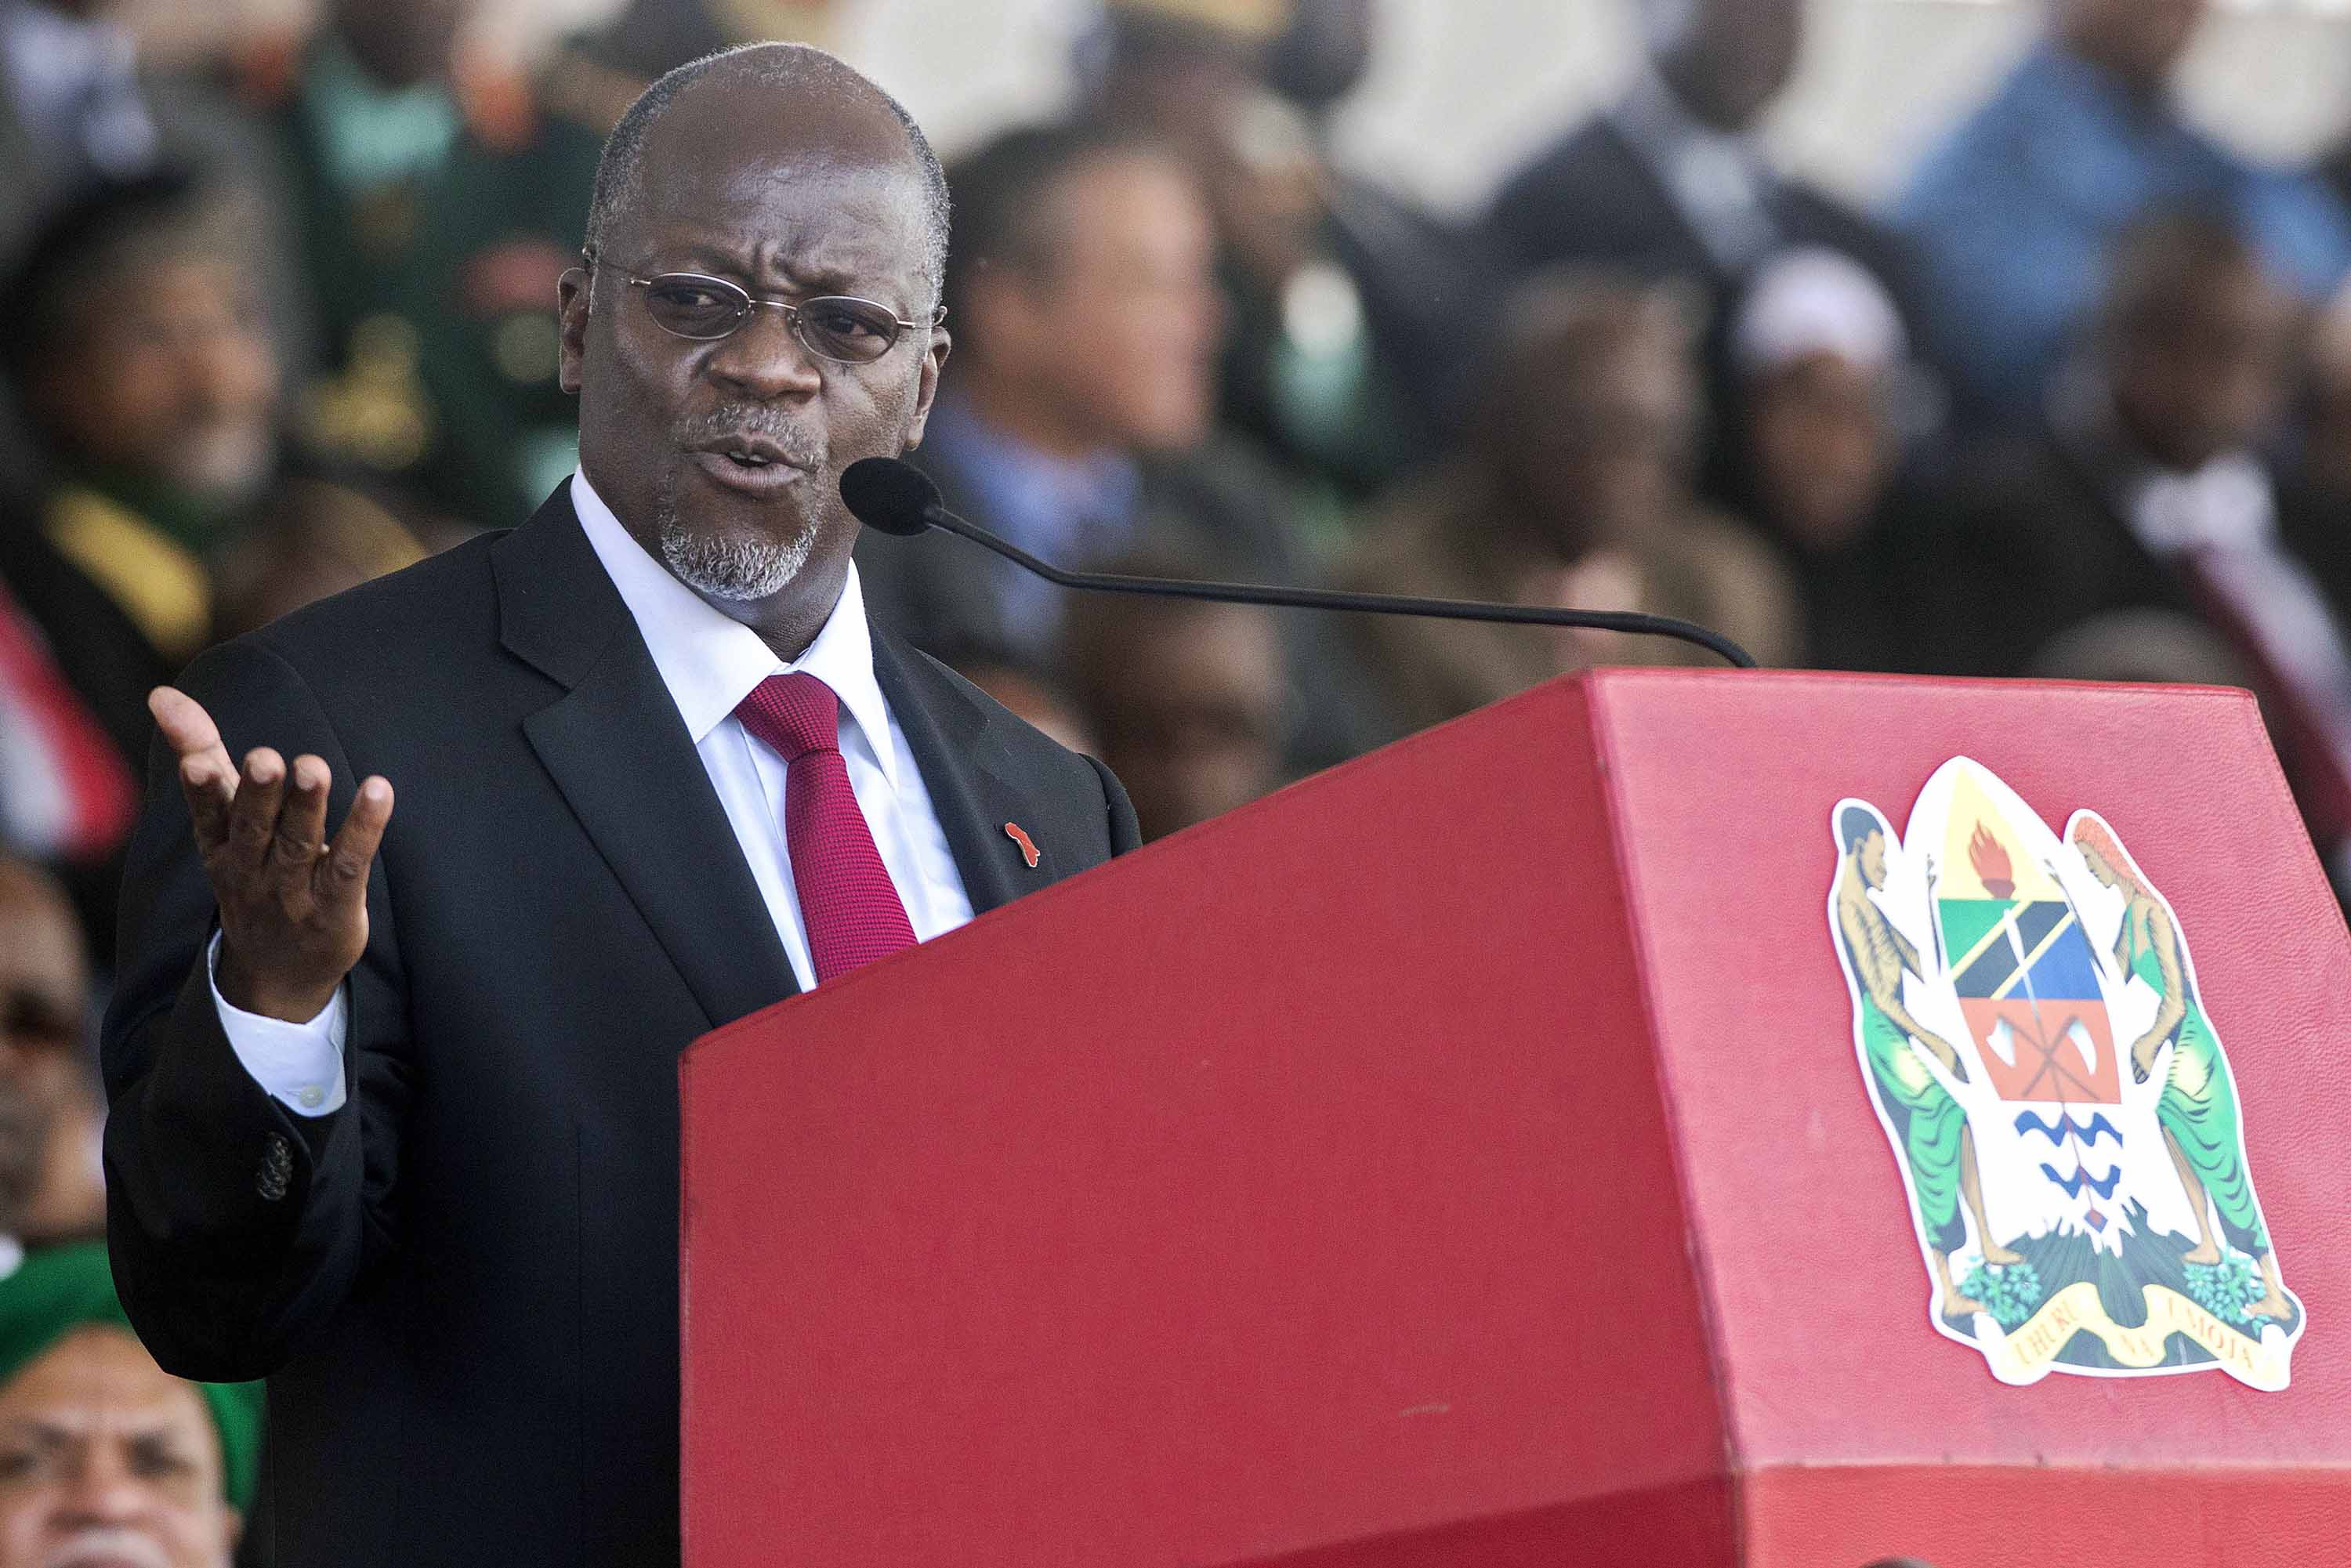 Tanzanian President John Magufuli is pictured delivering a speech in Dar es Salaam, Tanzania, in November 2015.